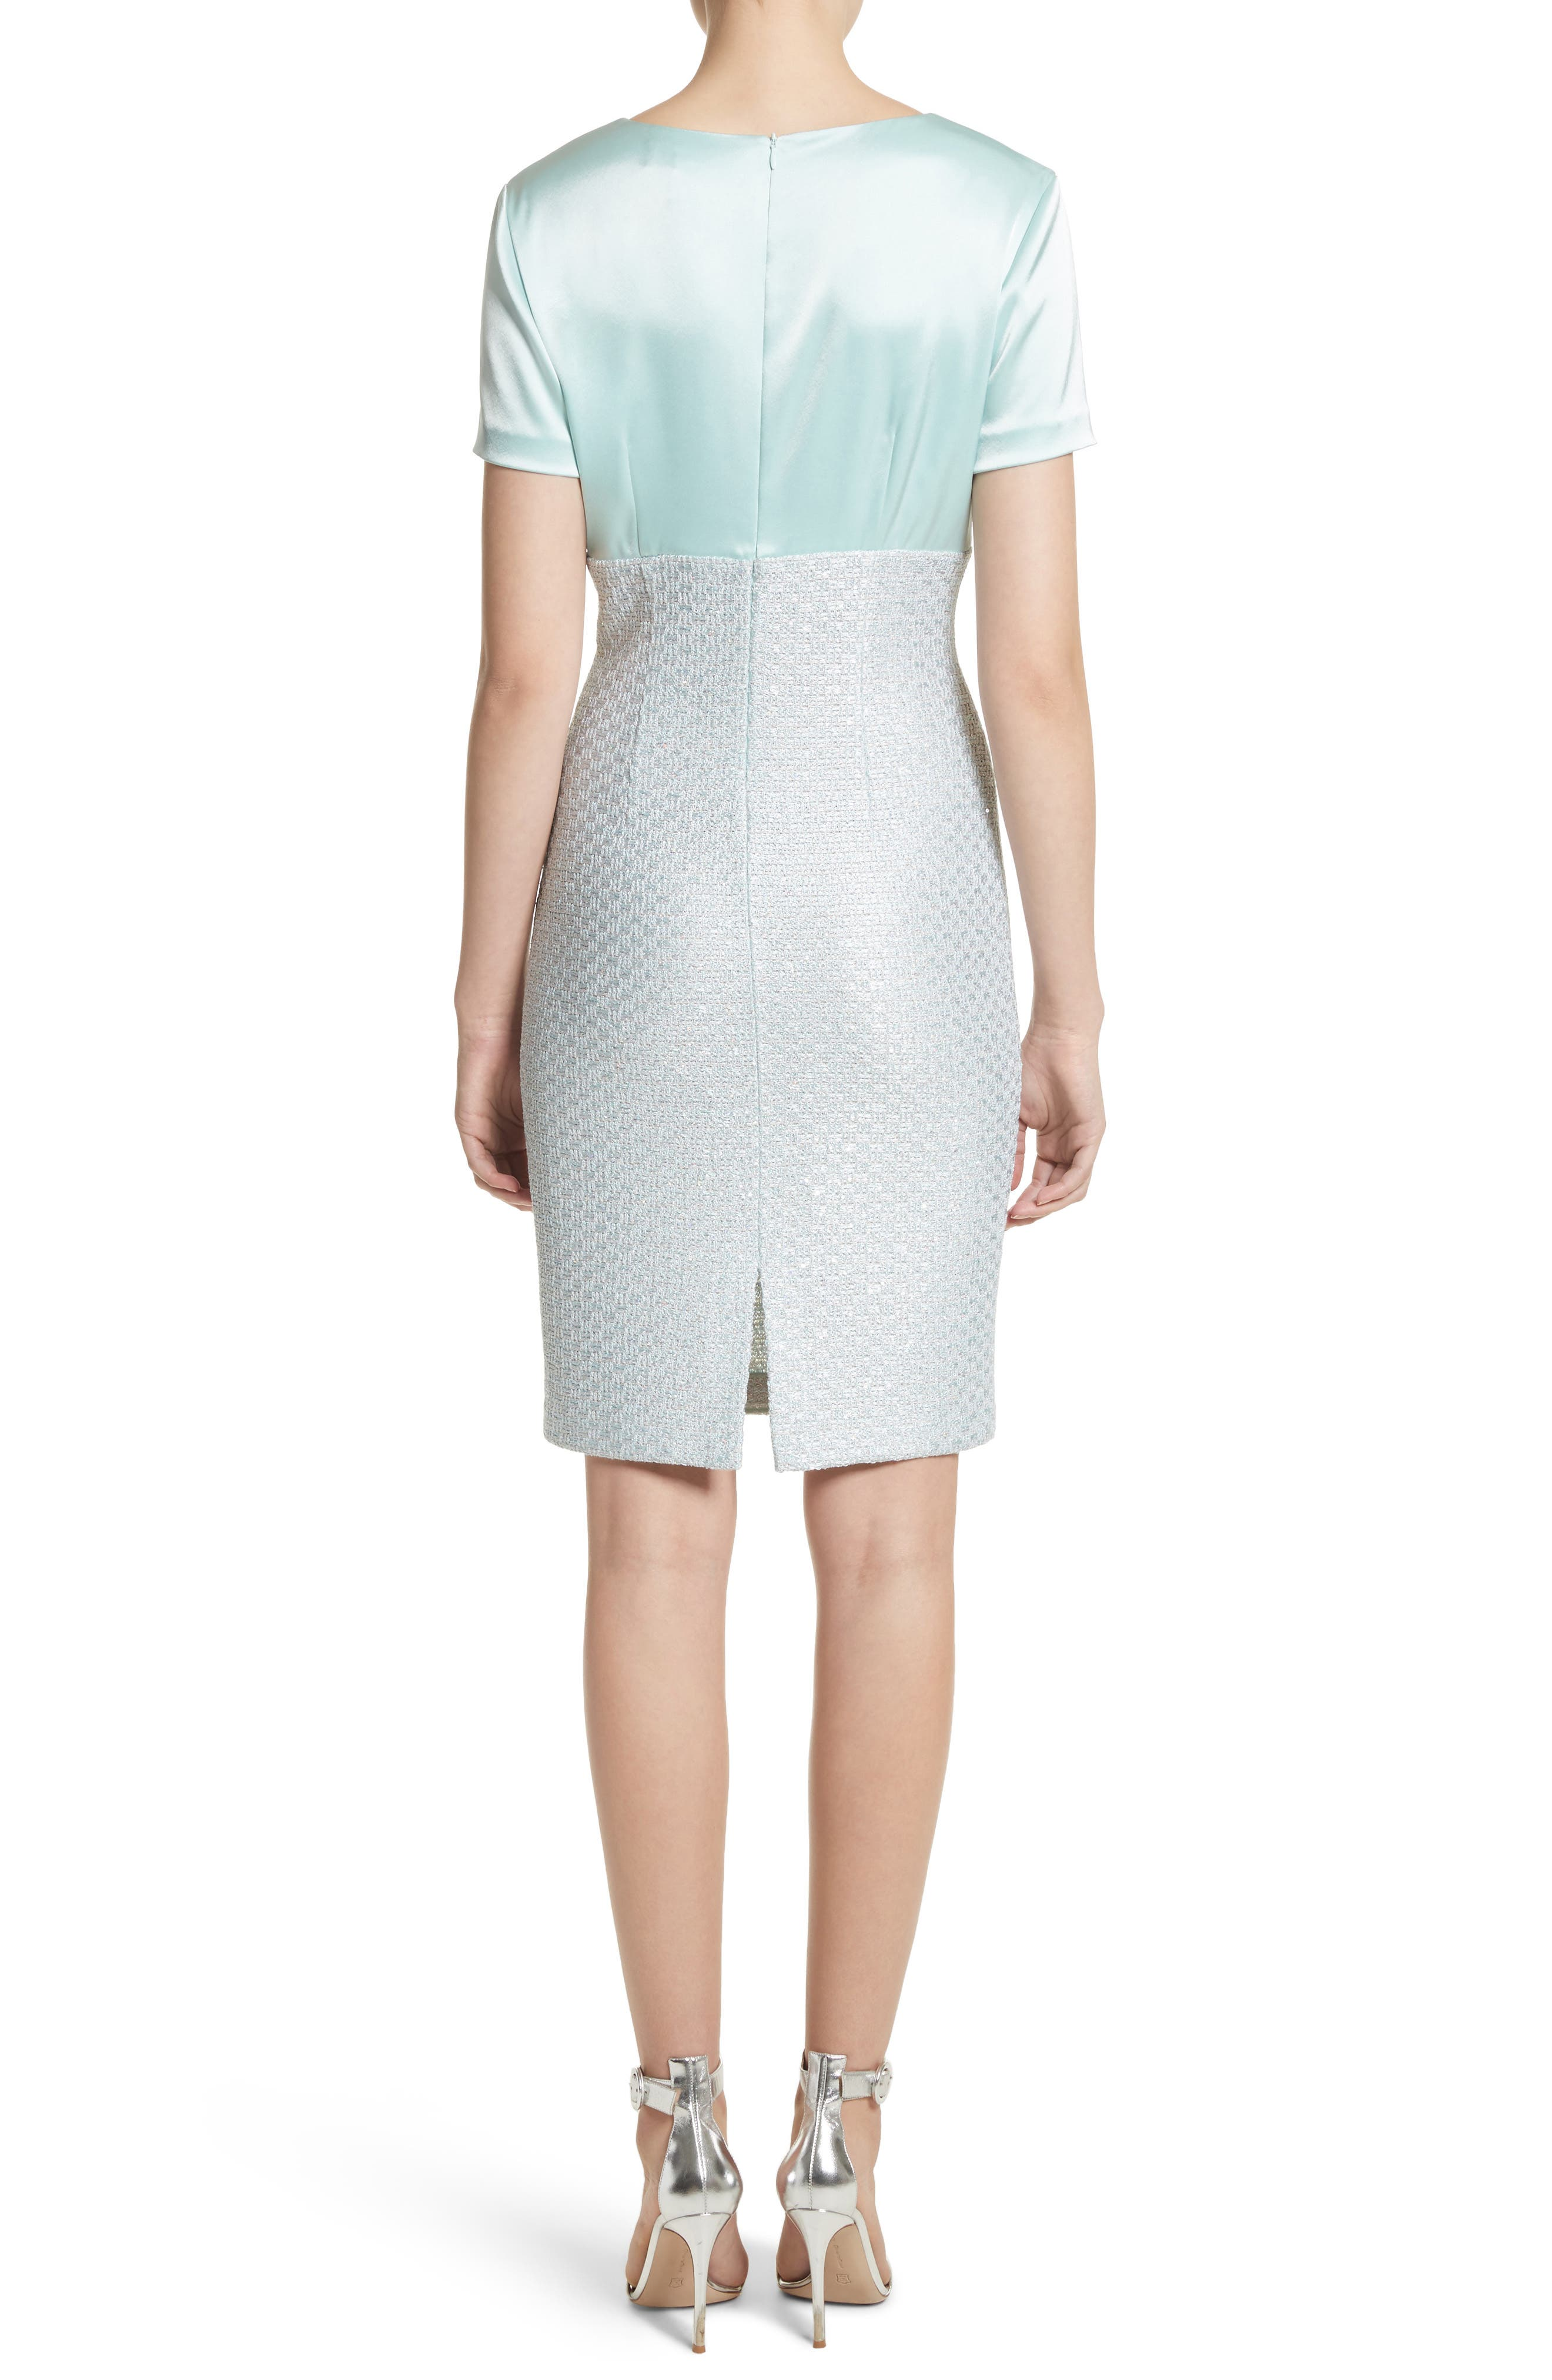 Hansh Satin & Knit Sheath Dress,                             Alternate thumbnail 2, color,                             Mint